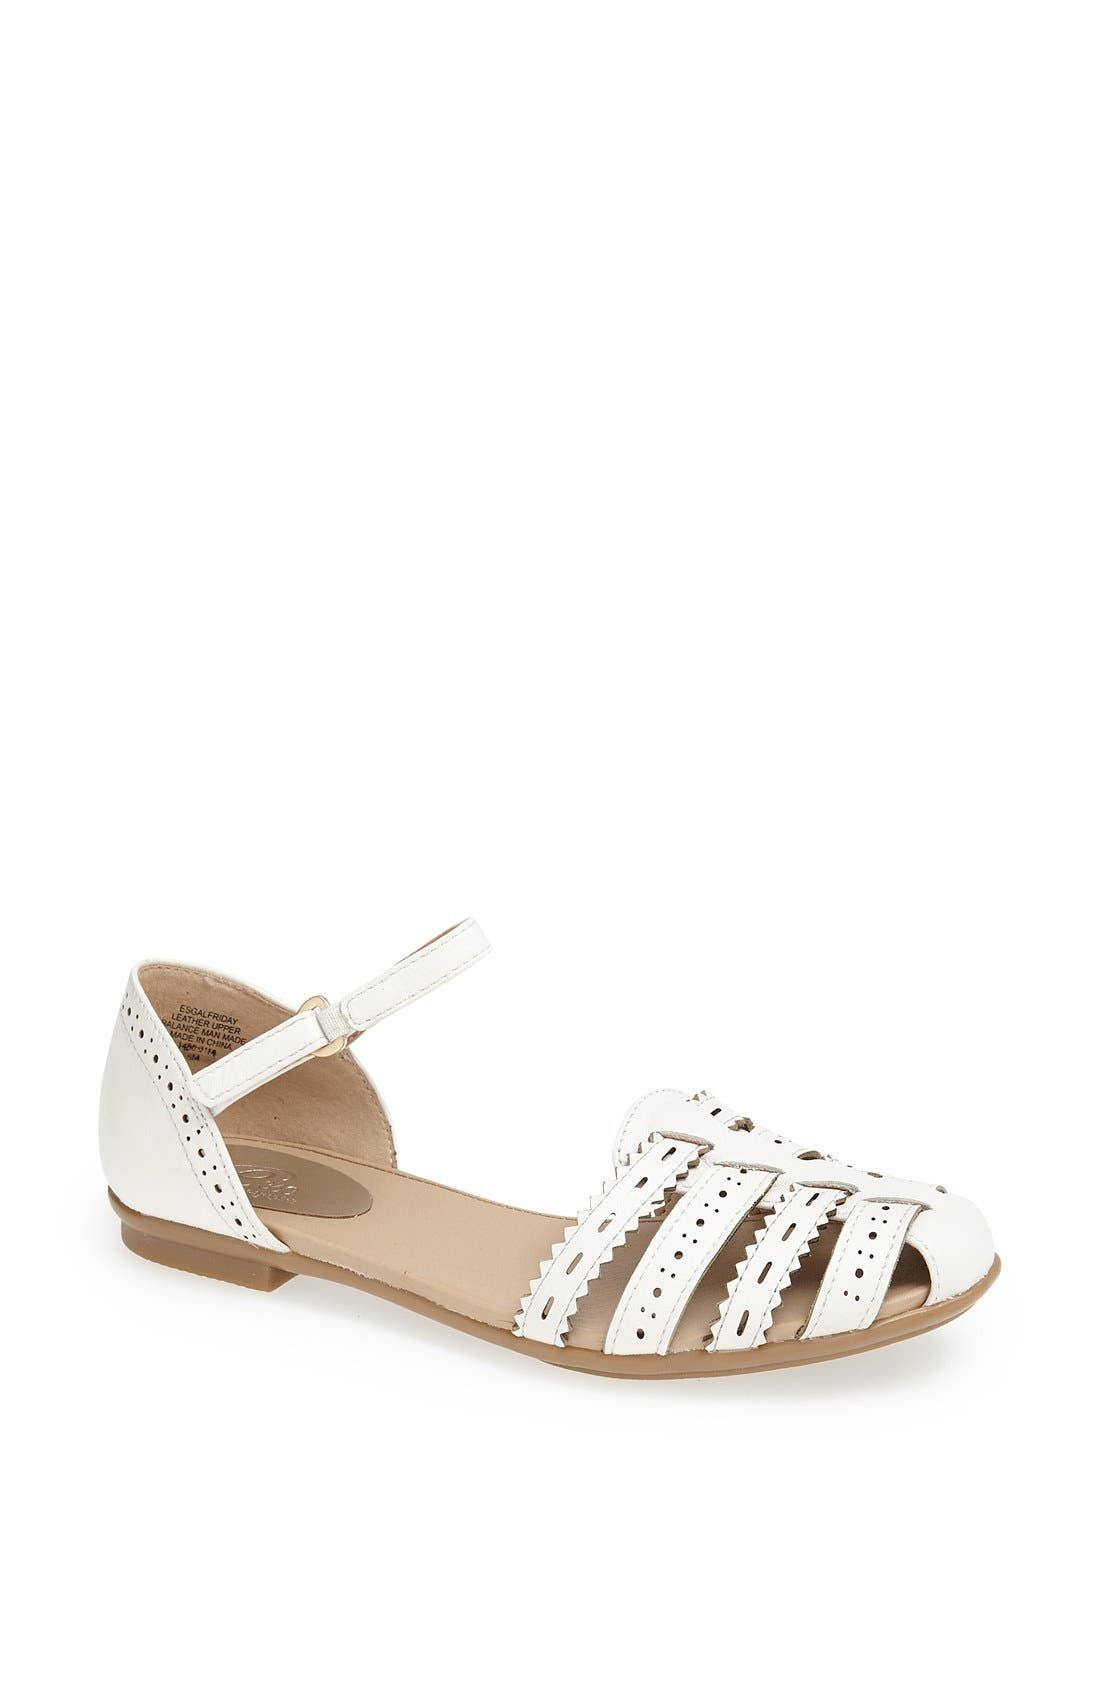 Main Image - Easy Spirit 'e360 - Galfriday' Pinked & Perforated Leather Quarter Strap Sandal (Women)